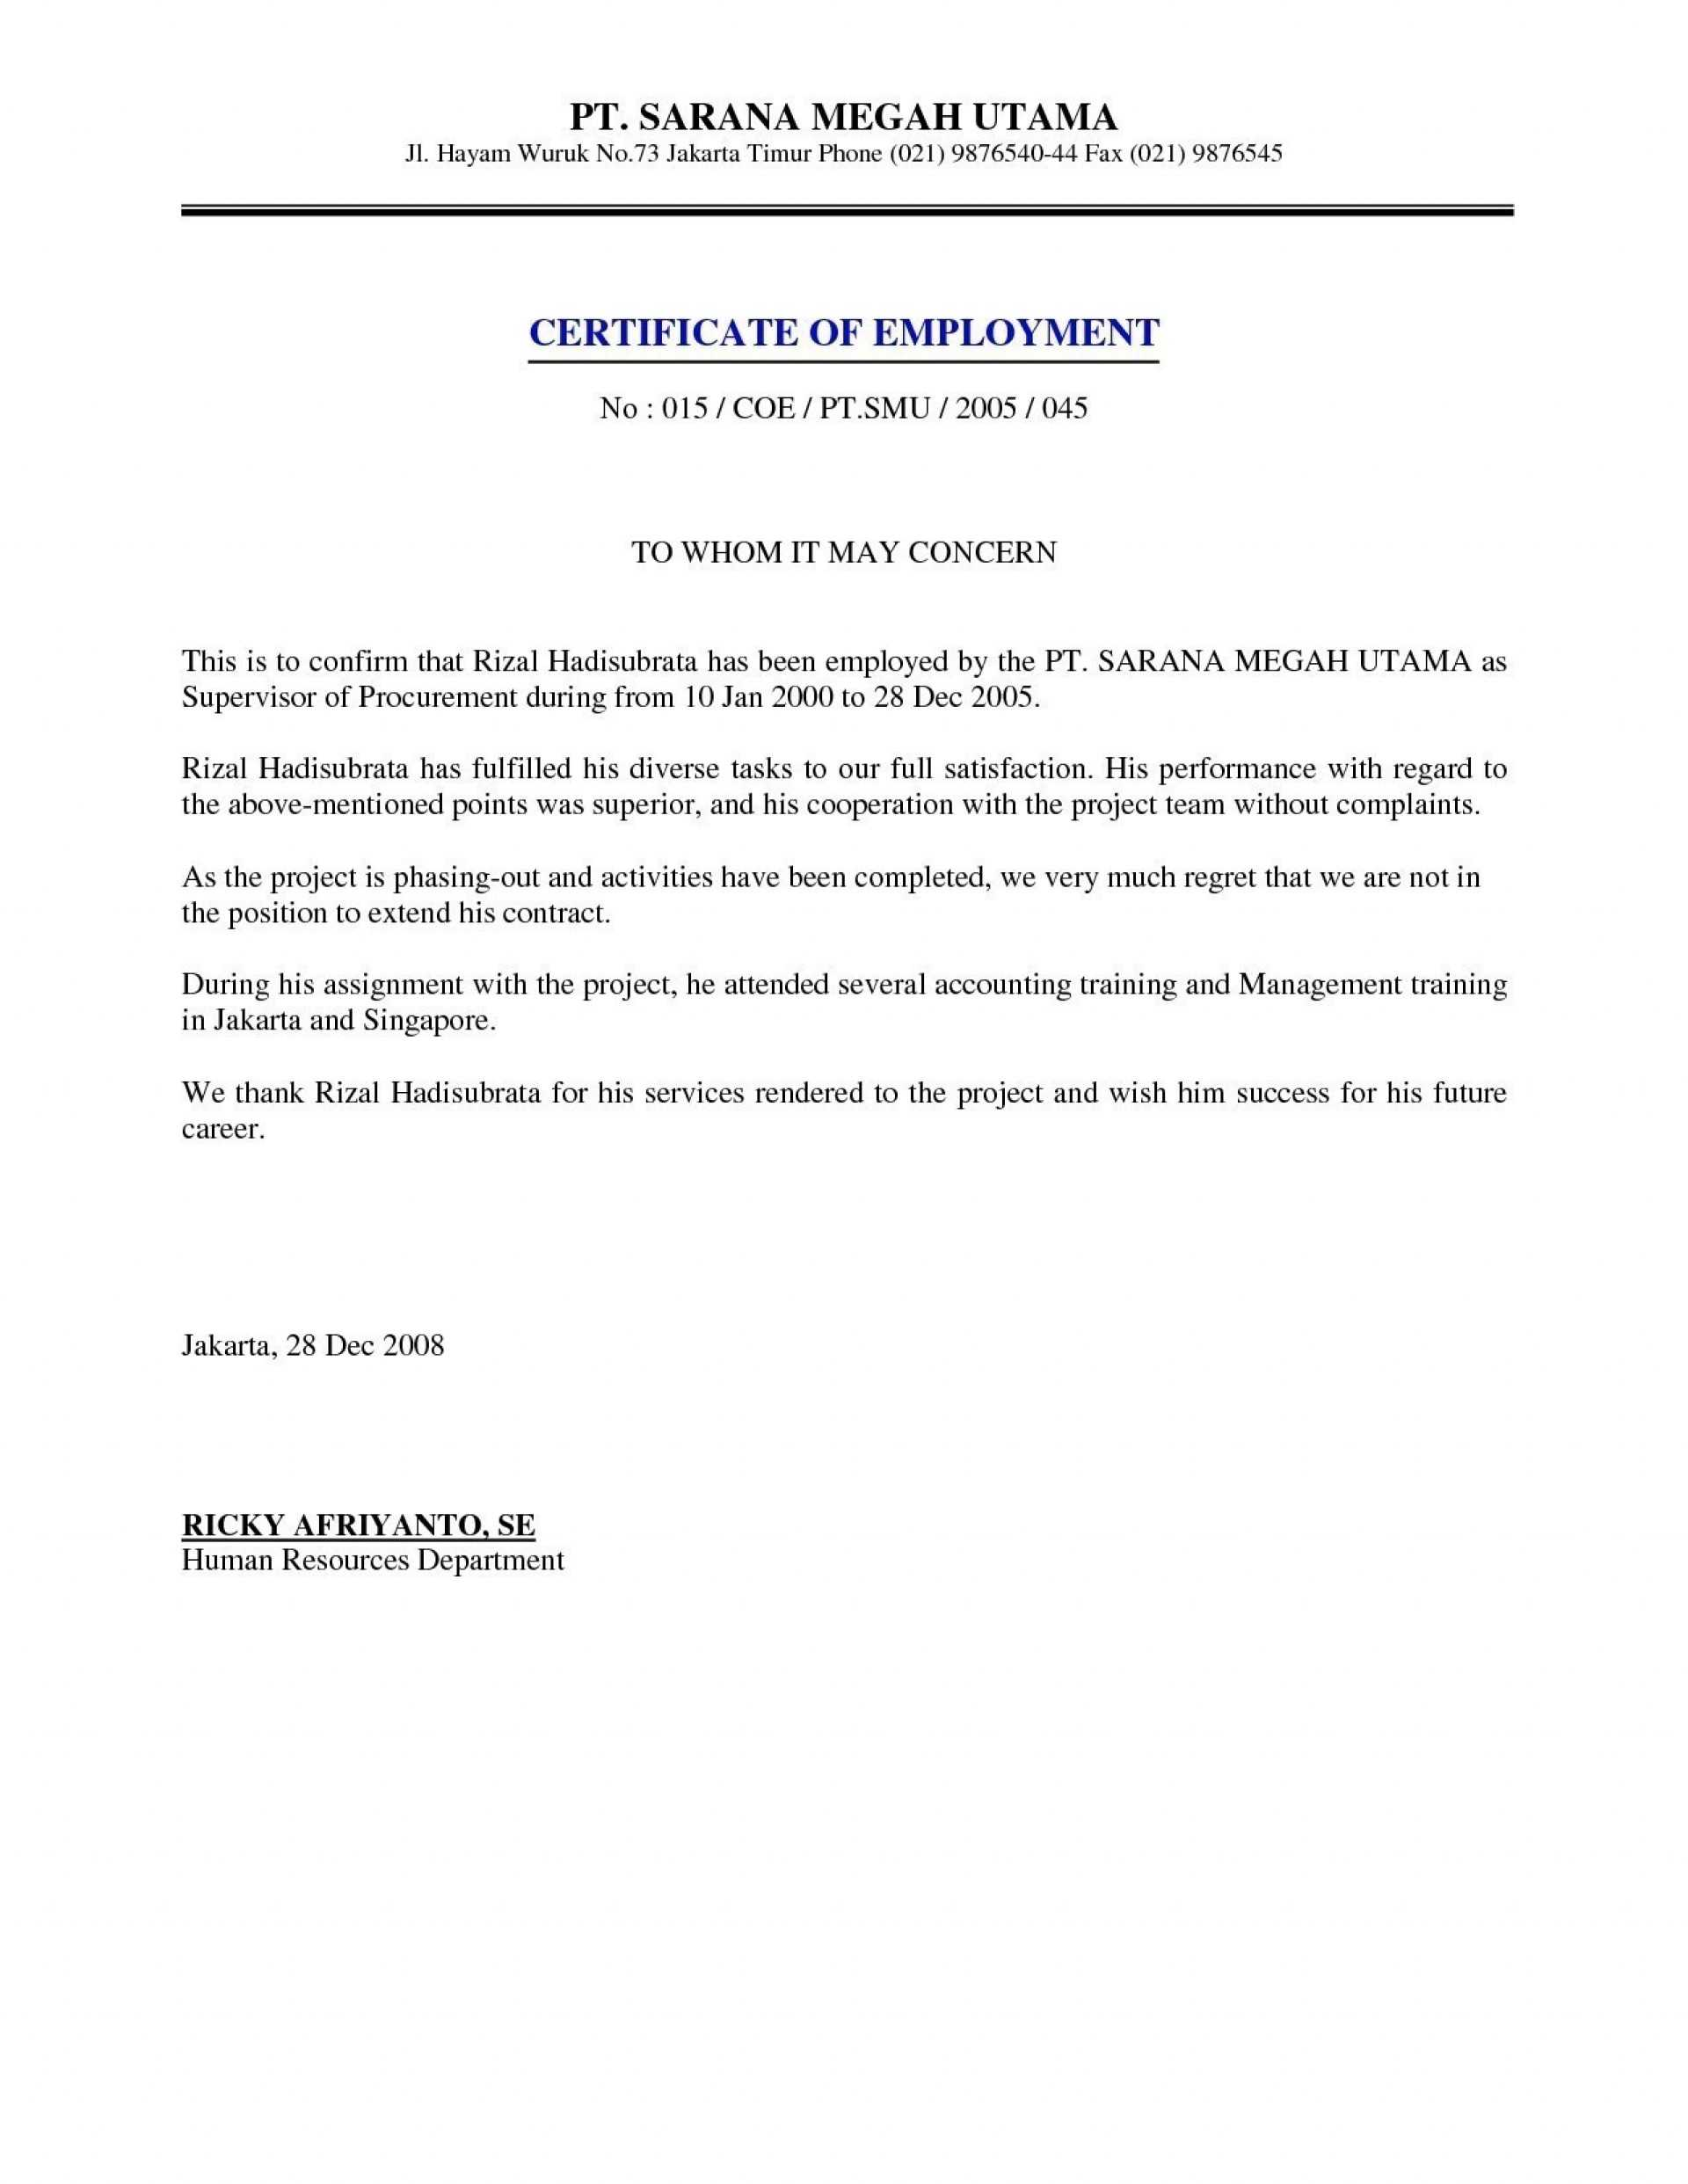 004 Refrence Sample Certificate Employment With Salary In Sample Certificate Employment Template